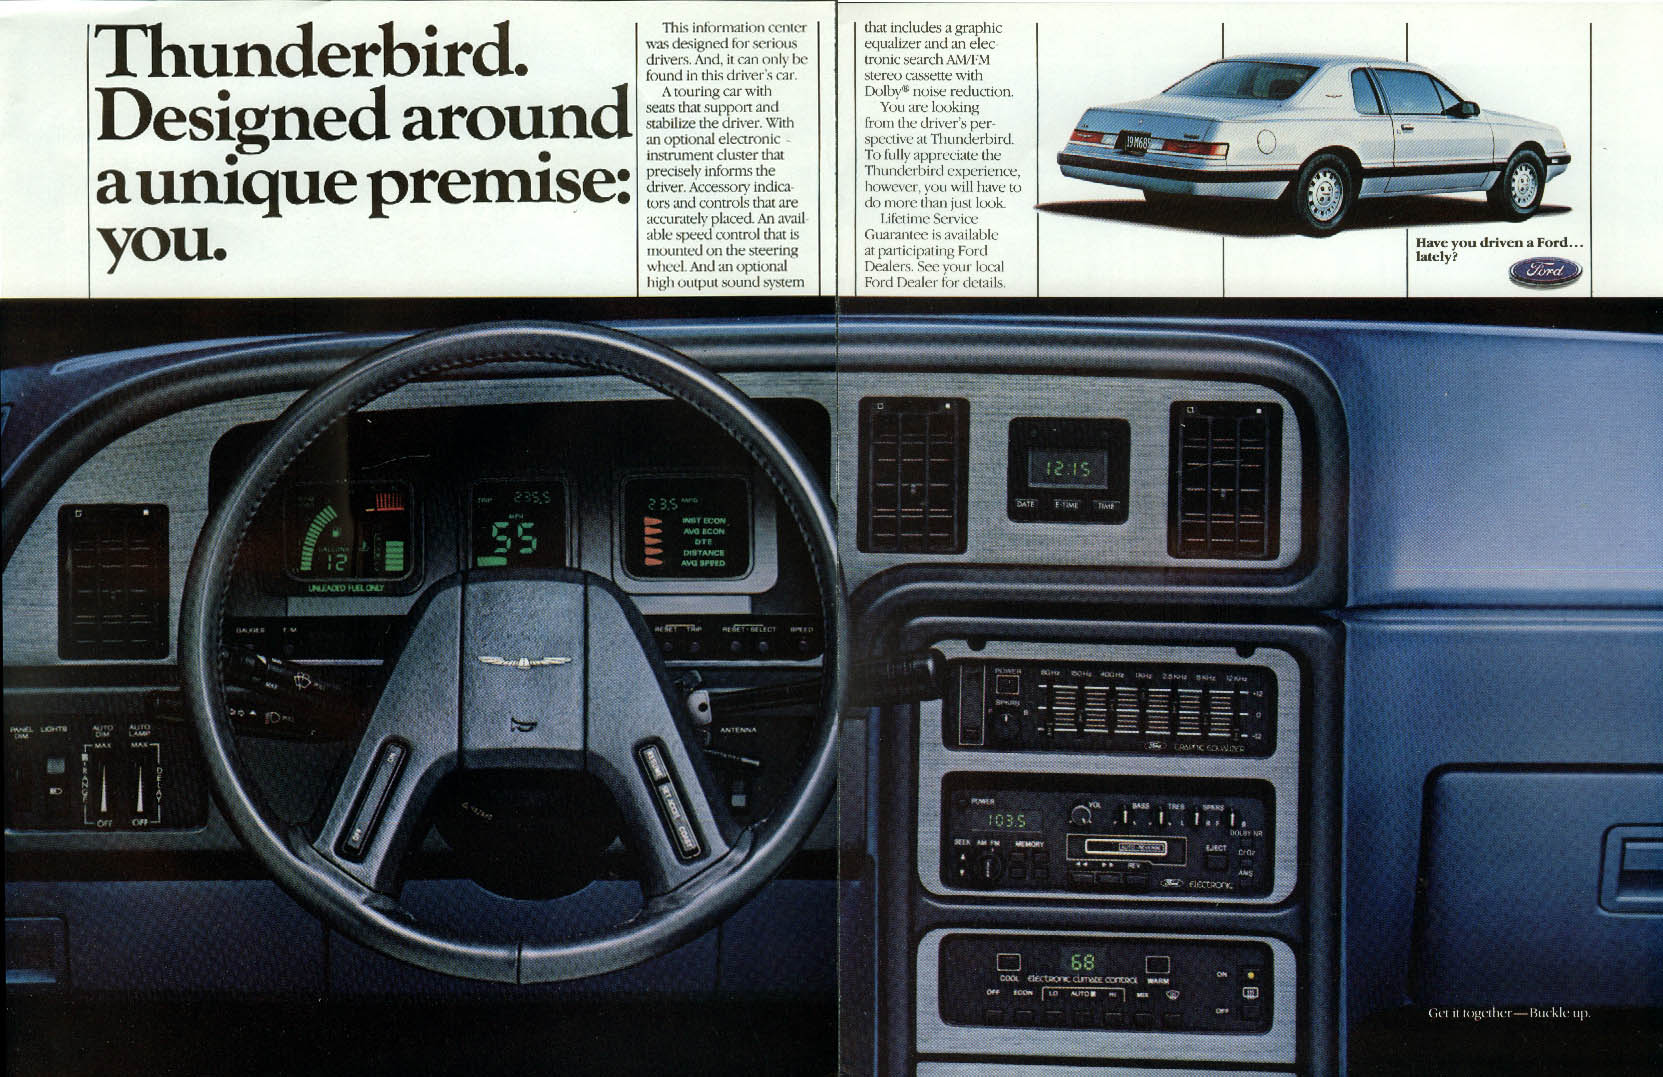 Designed around a unique premise: you. Ford Thunderbird ad 1985